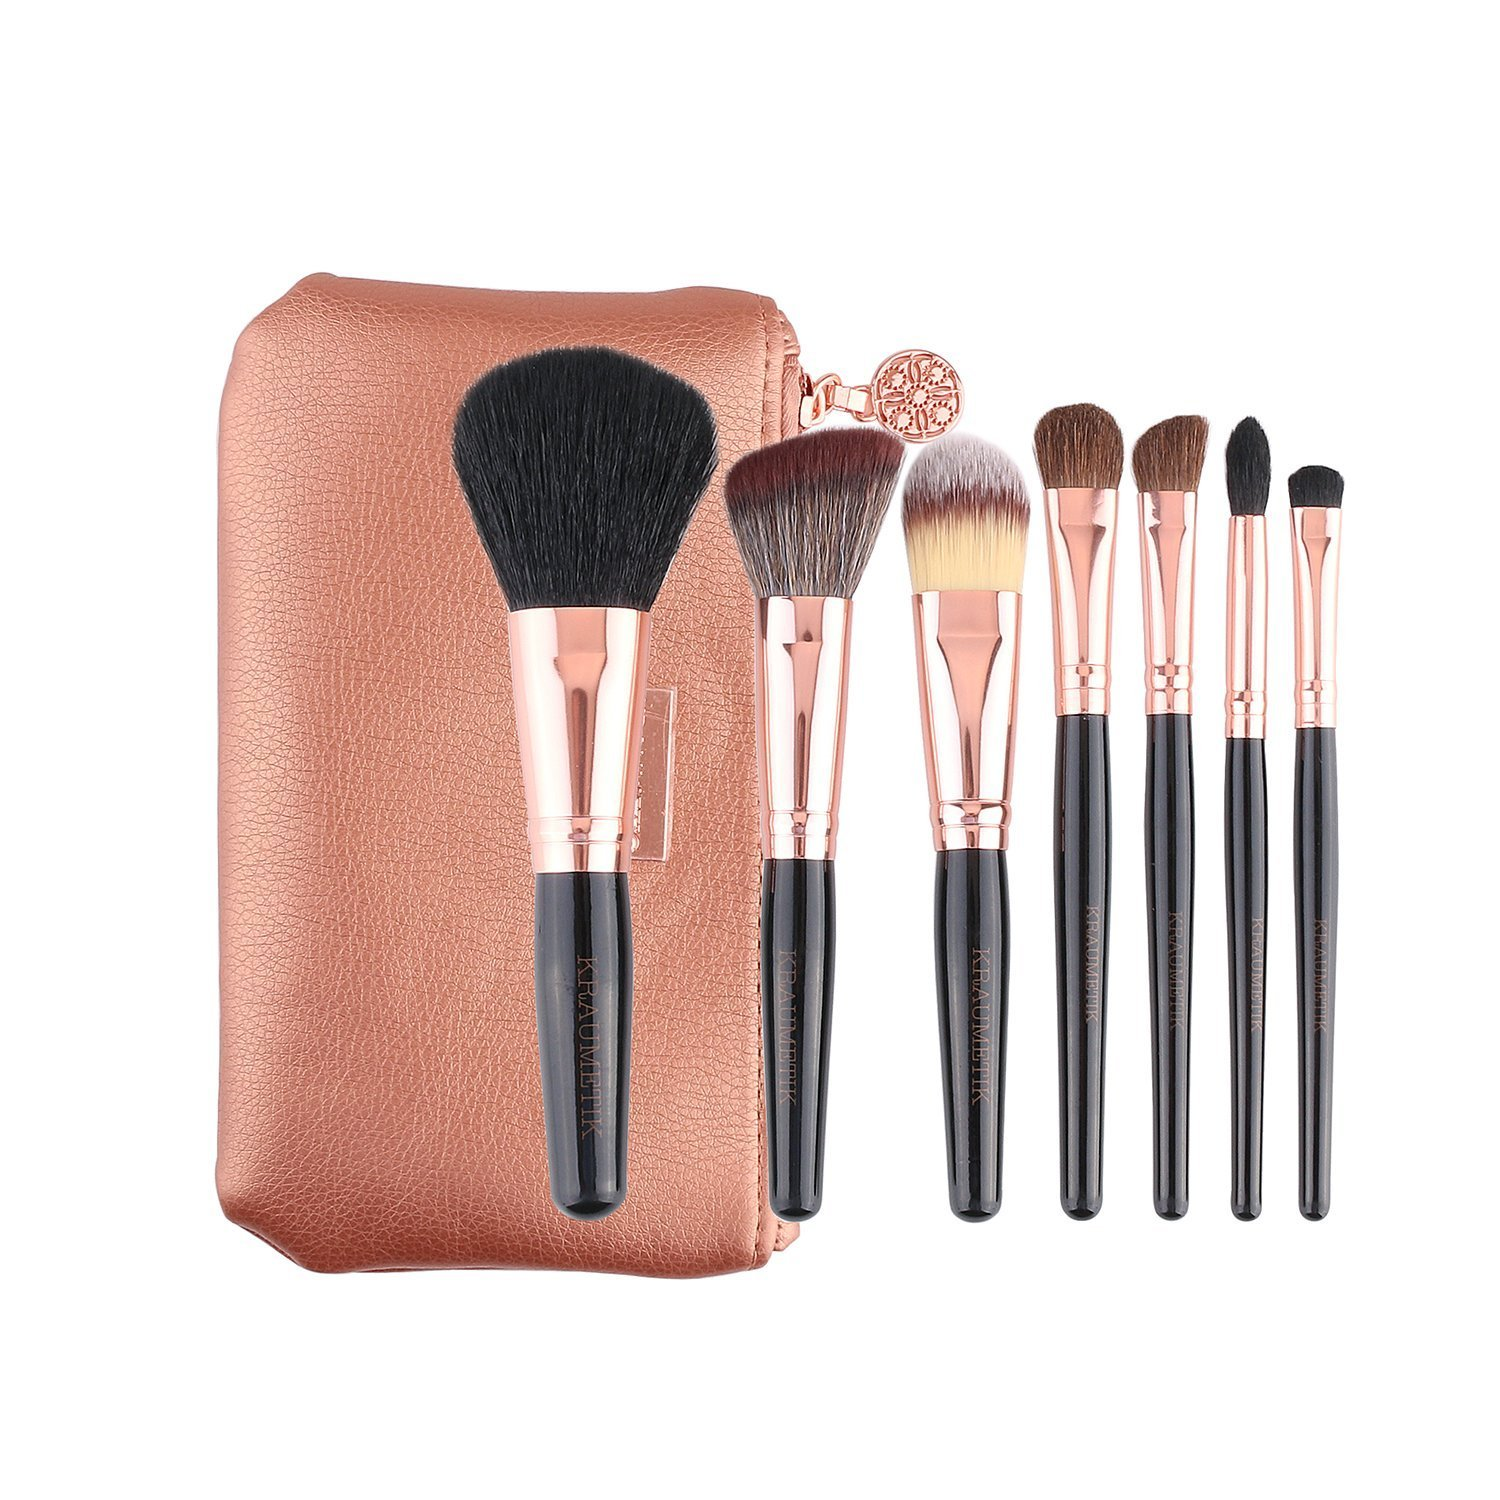 7 pcs Makeup Brush Set Professional Premium Synthetic Kabuki Foundation Blending Blush Concealer Eye Face Liquid Powder Cream Cosmetics Brush Tool Brushes Kit with Rose Gold Pouch +Slim Liquid Eyeli joynfs